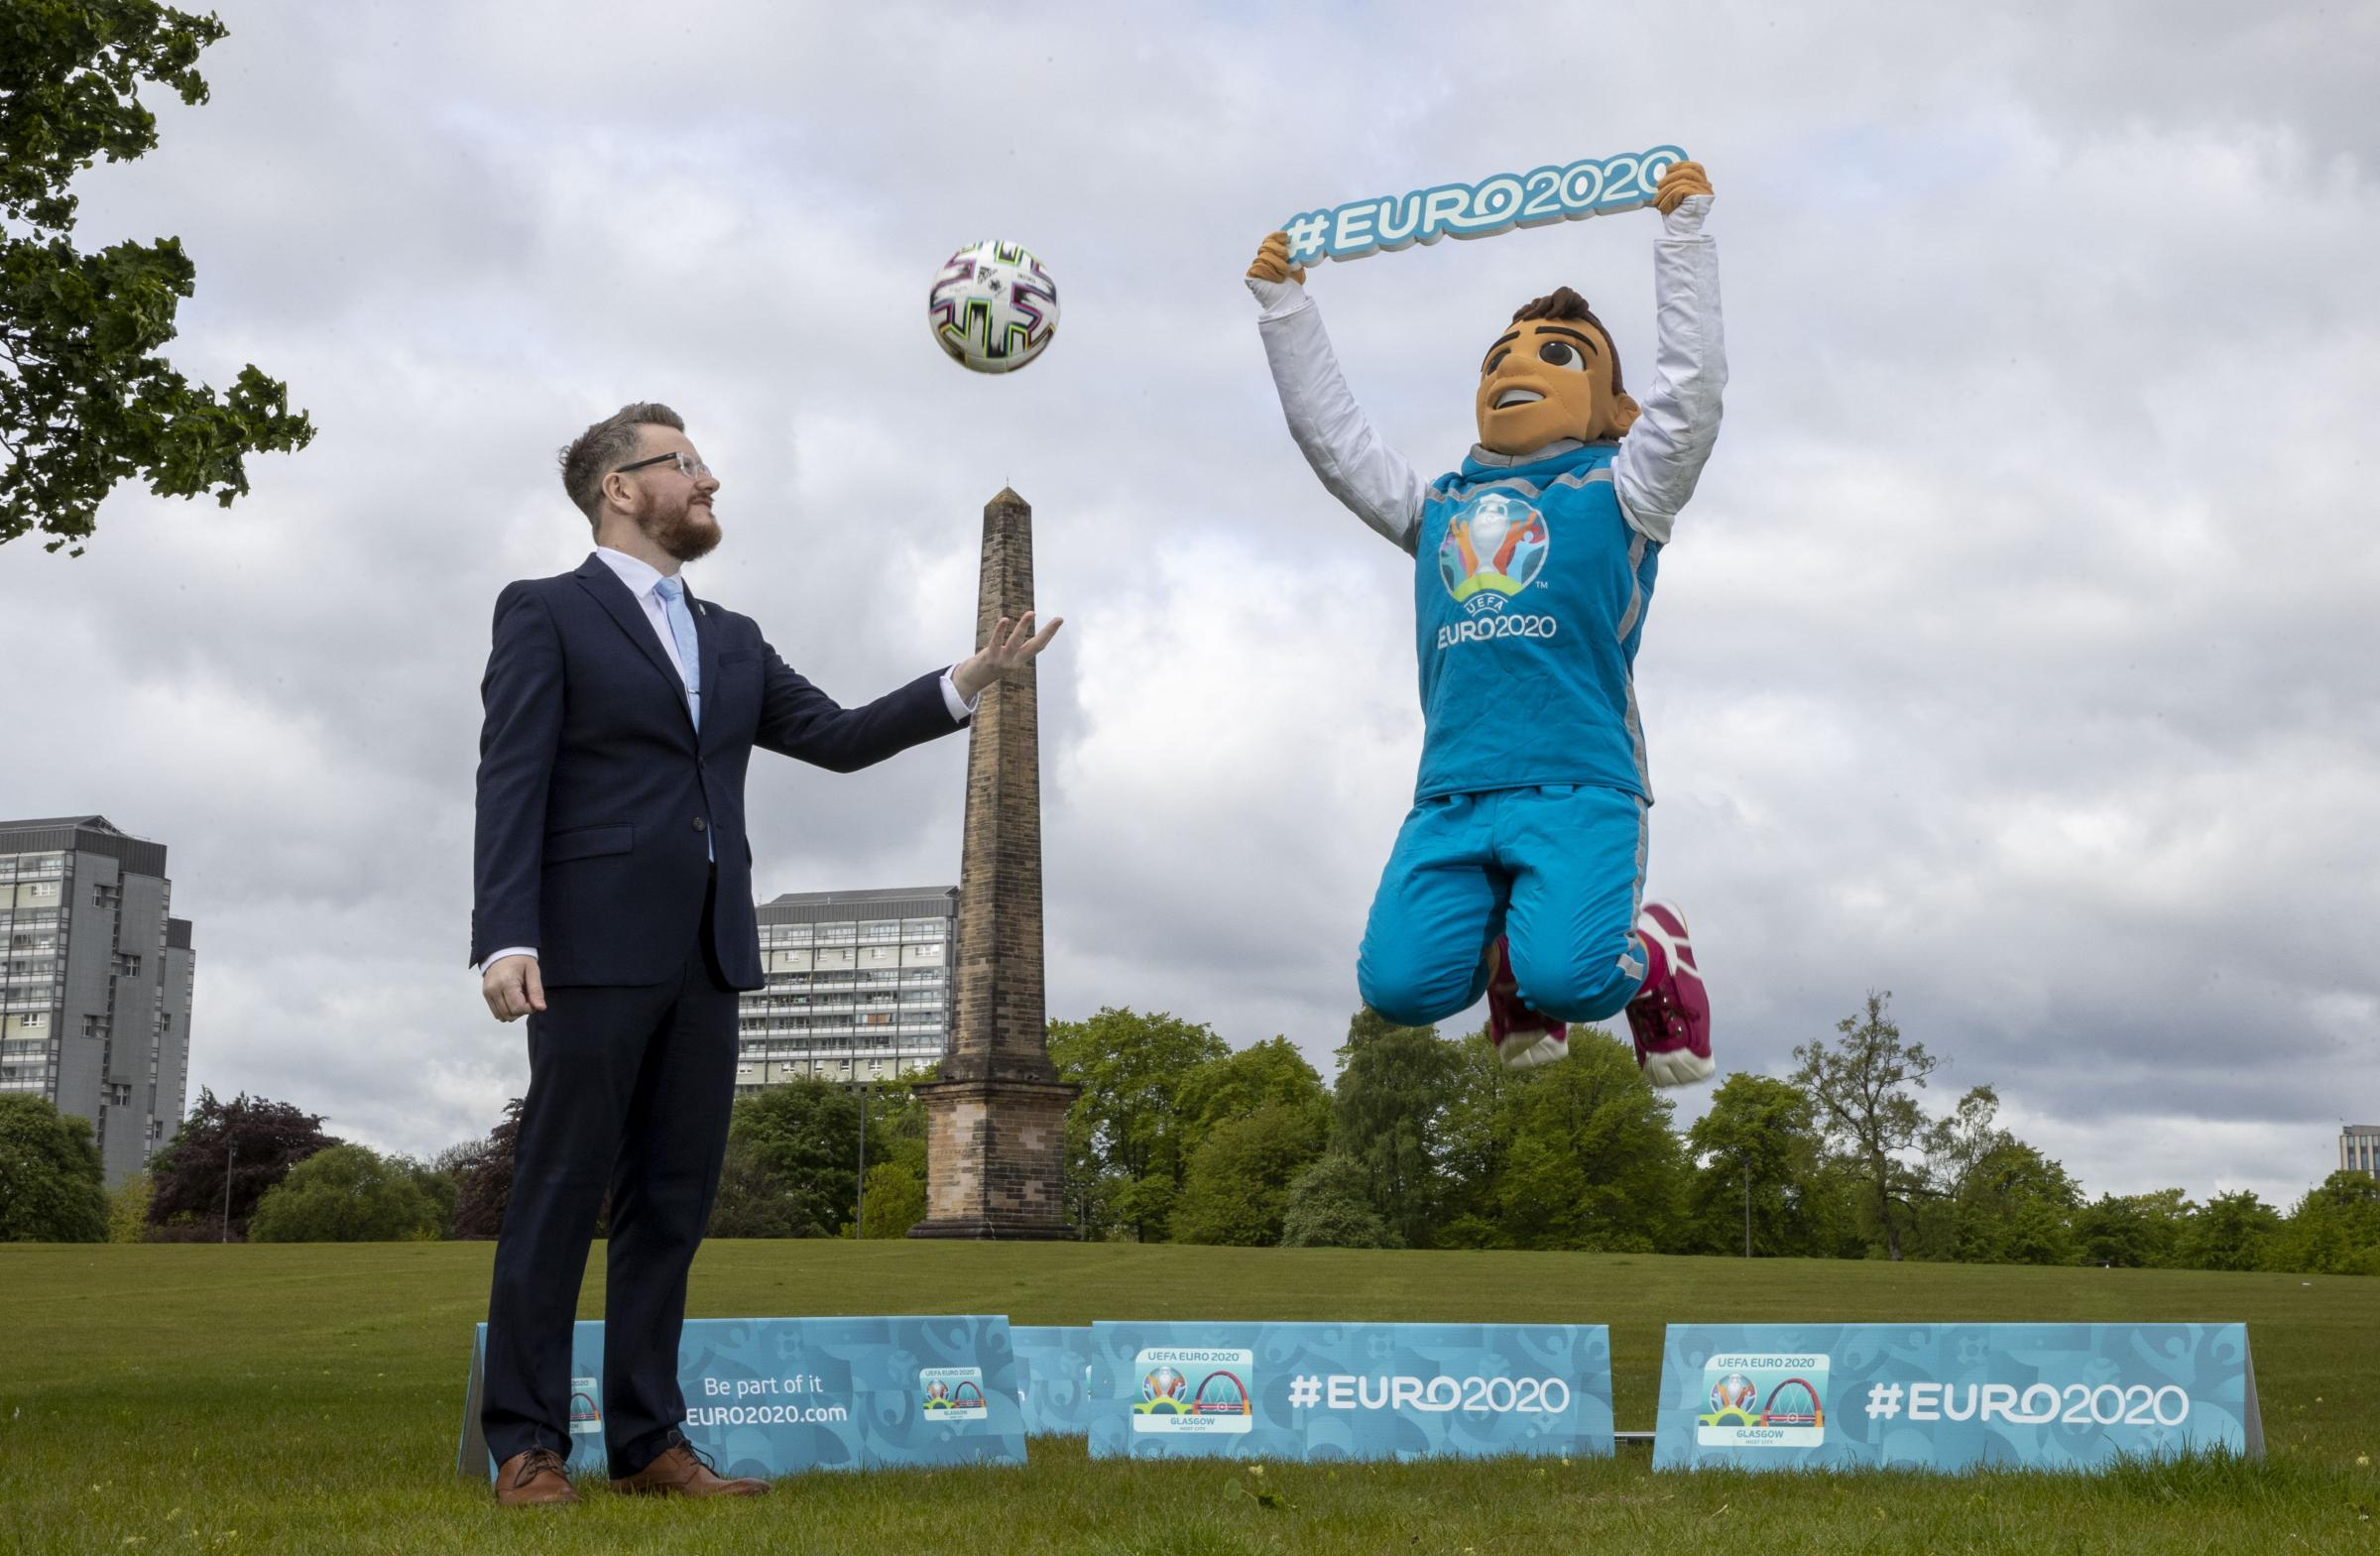 Glasgow Life gets licences for Euro 2020 fan zone in Glasgow Green